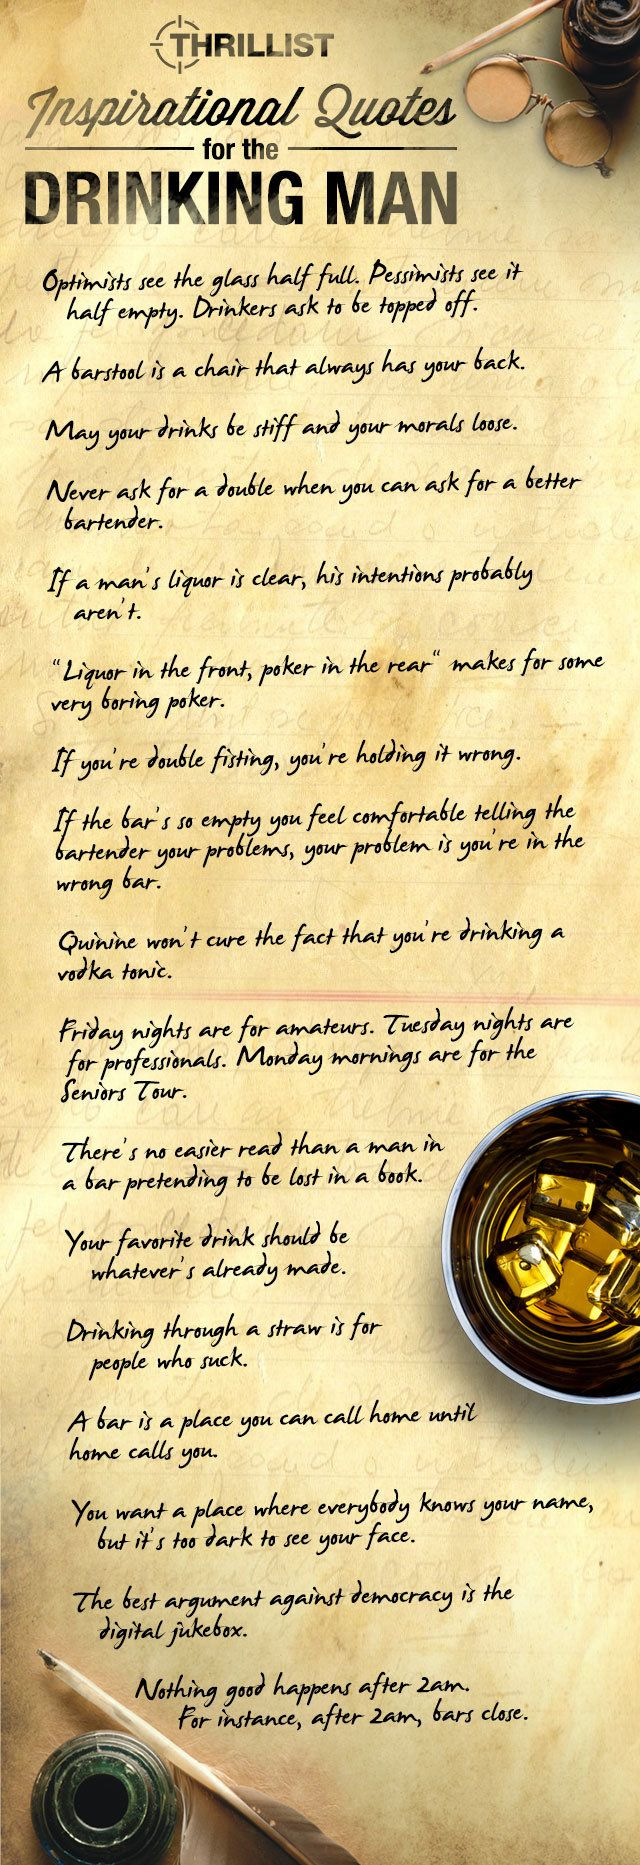 Quotes About Drinking - 16 New Quotations for the Drinking Man - Thrillist Nation